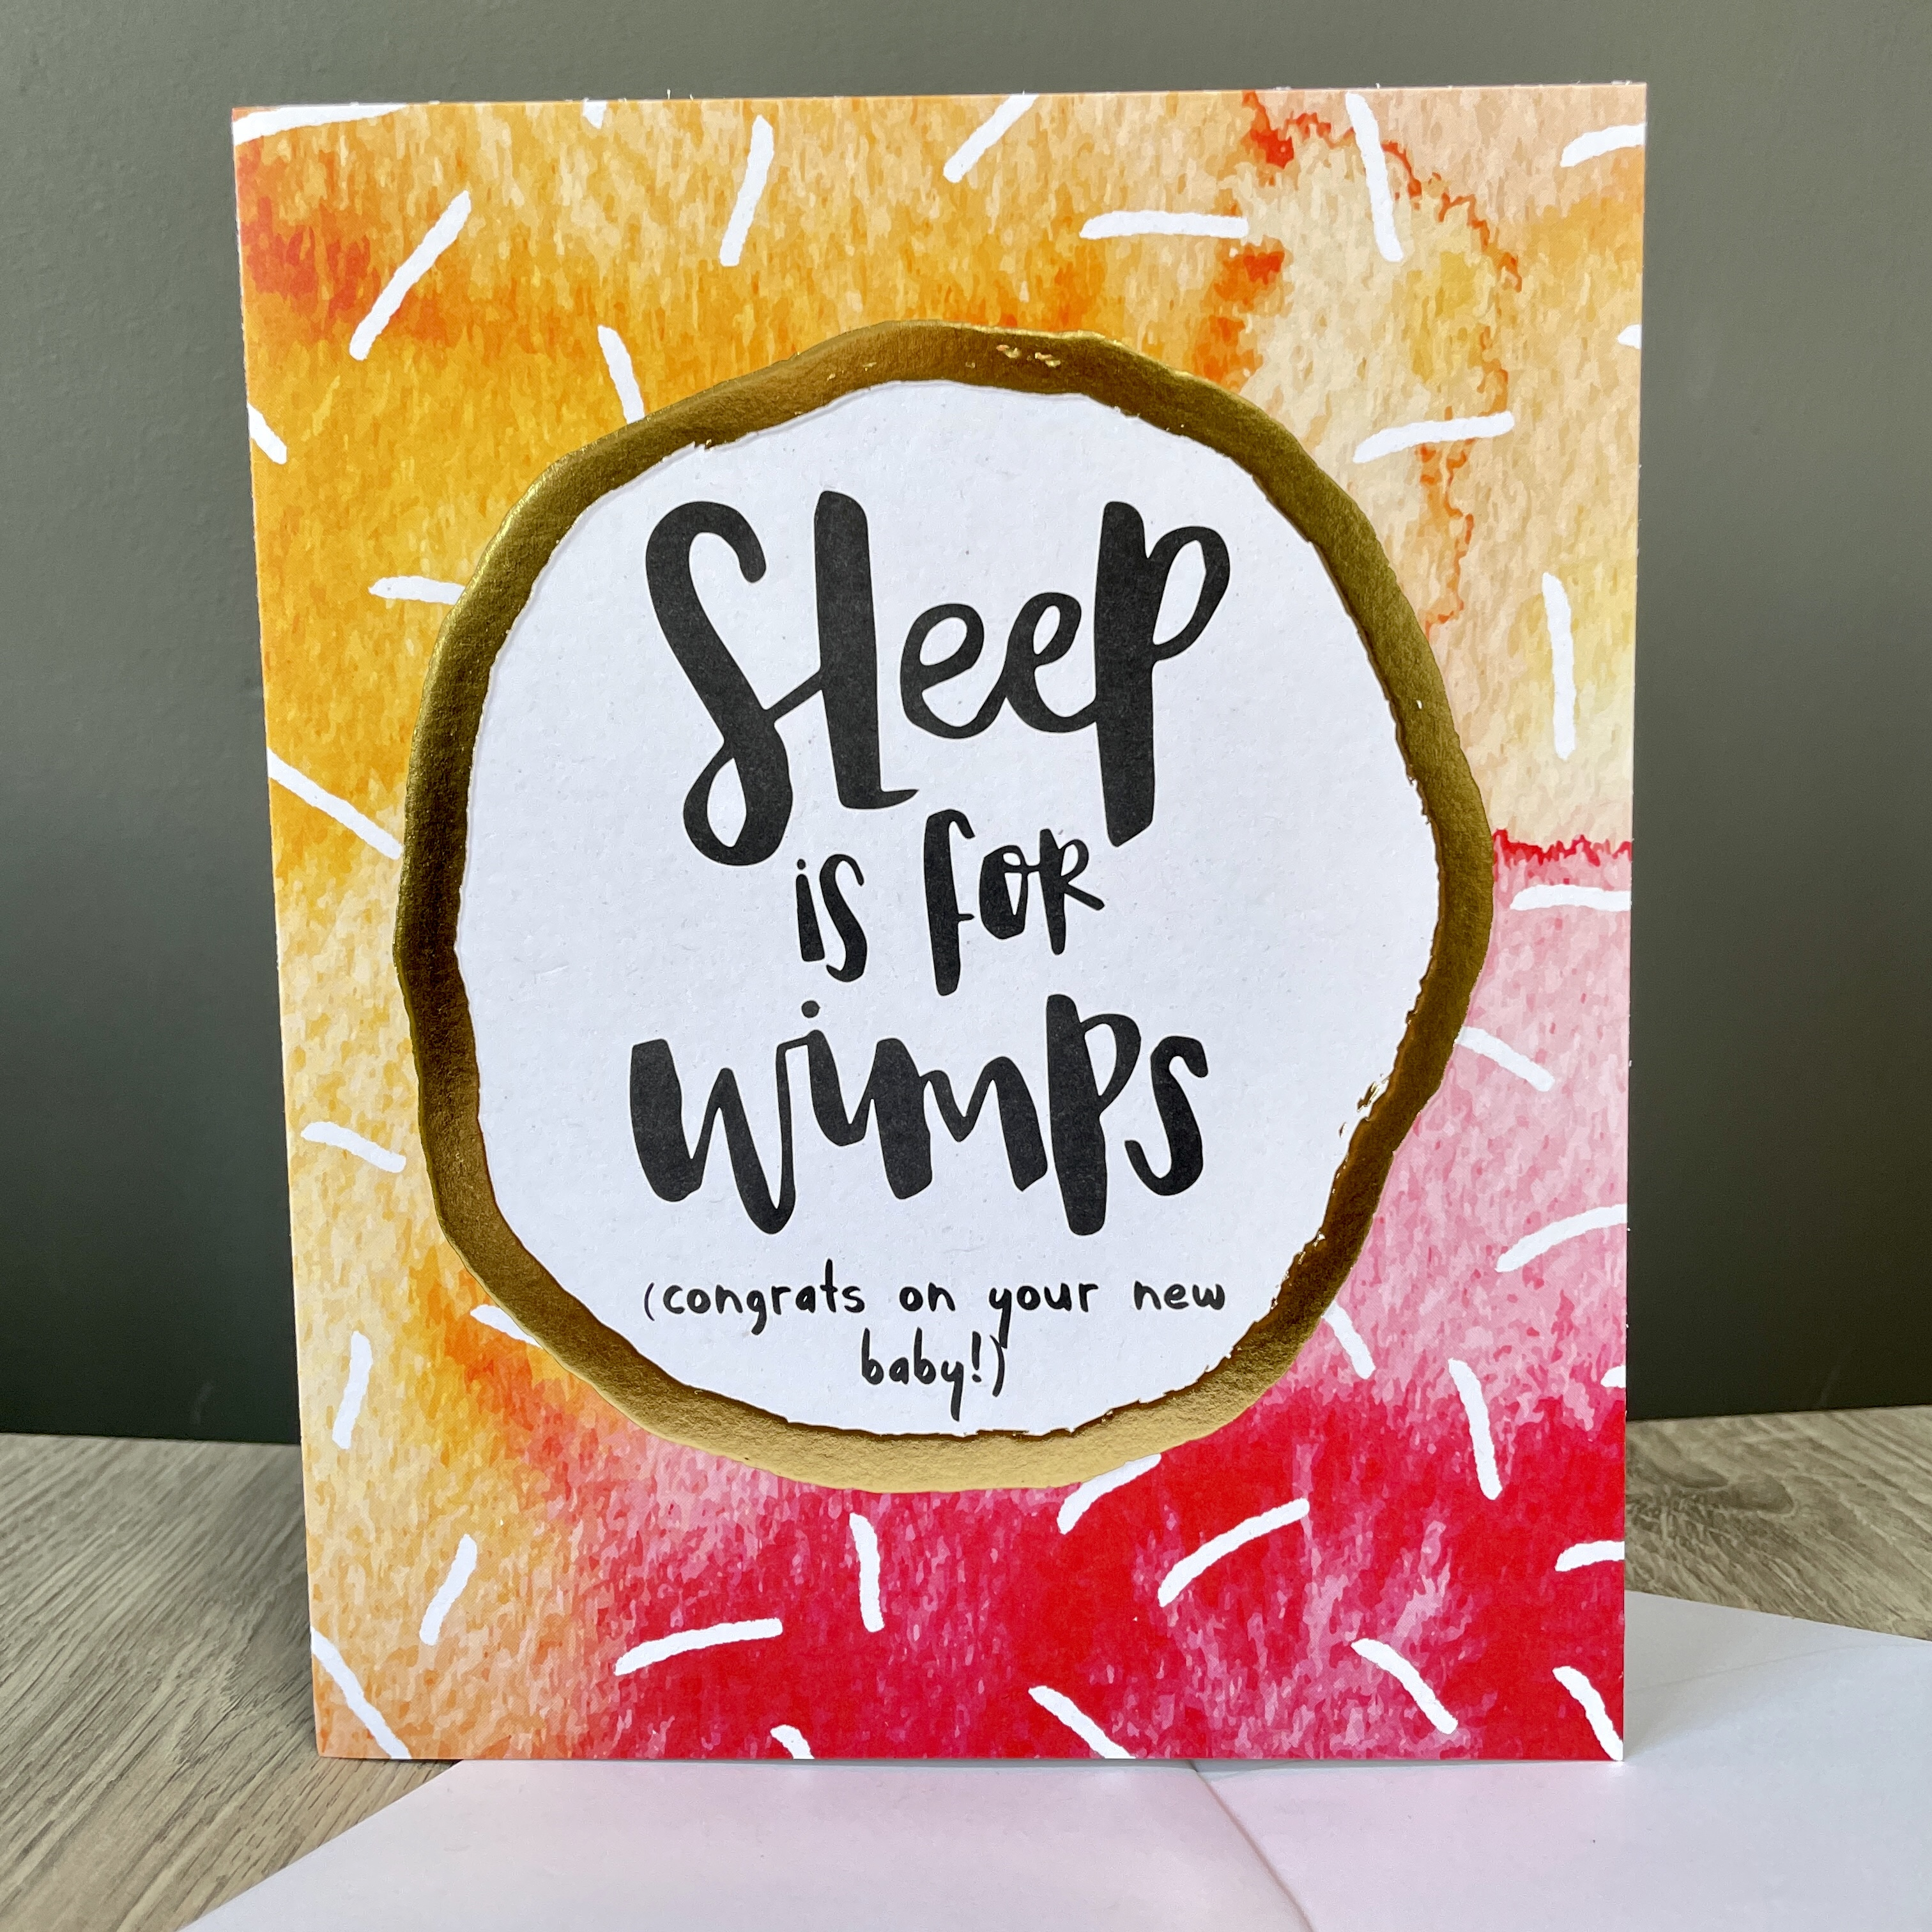 Sleep is for wimps. New baby card